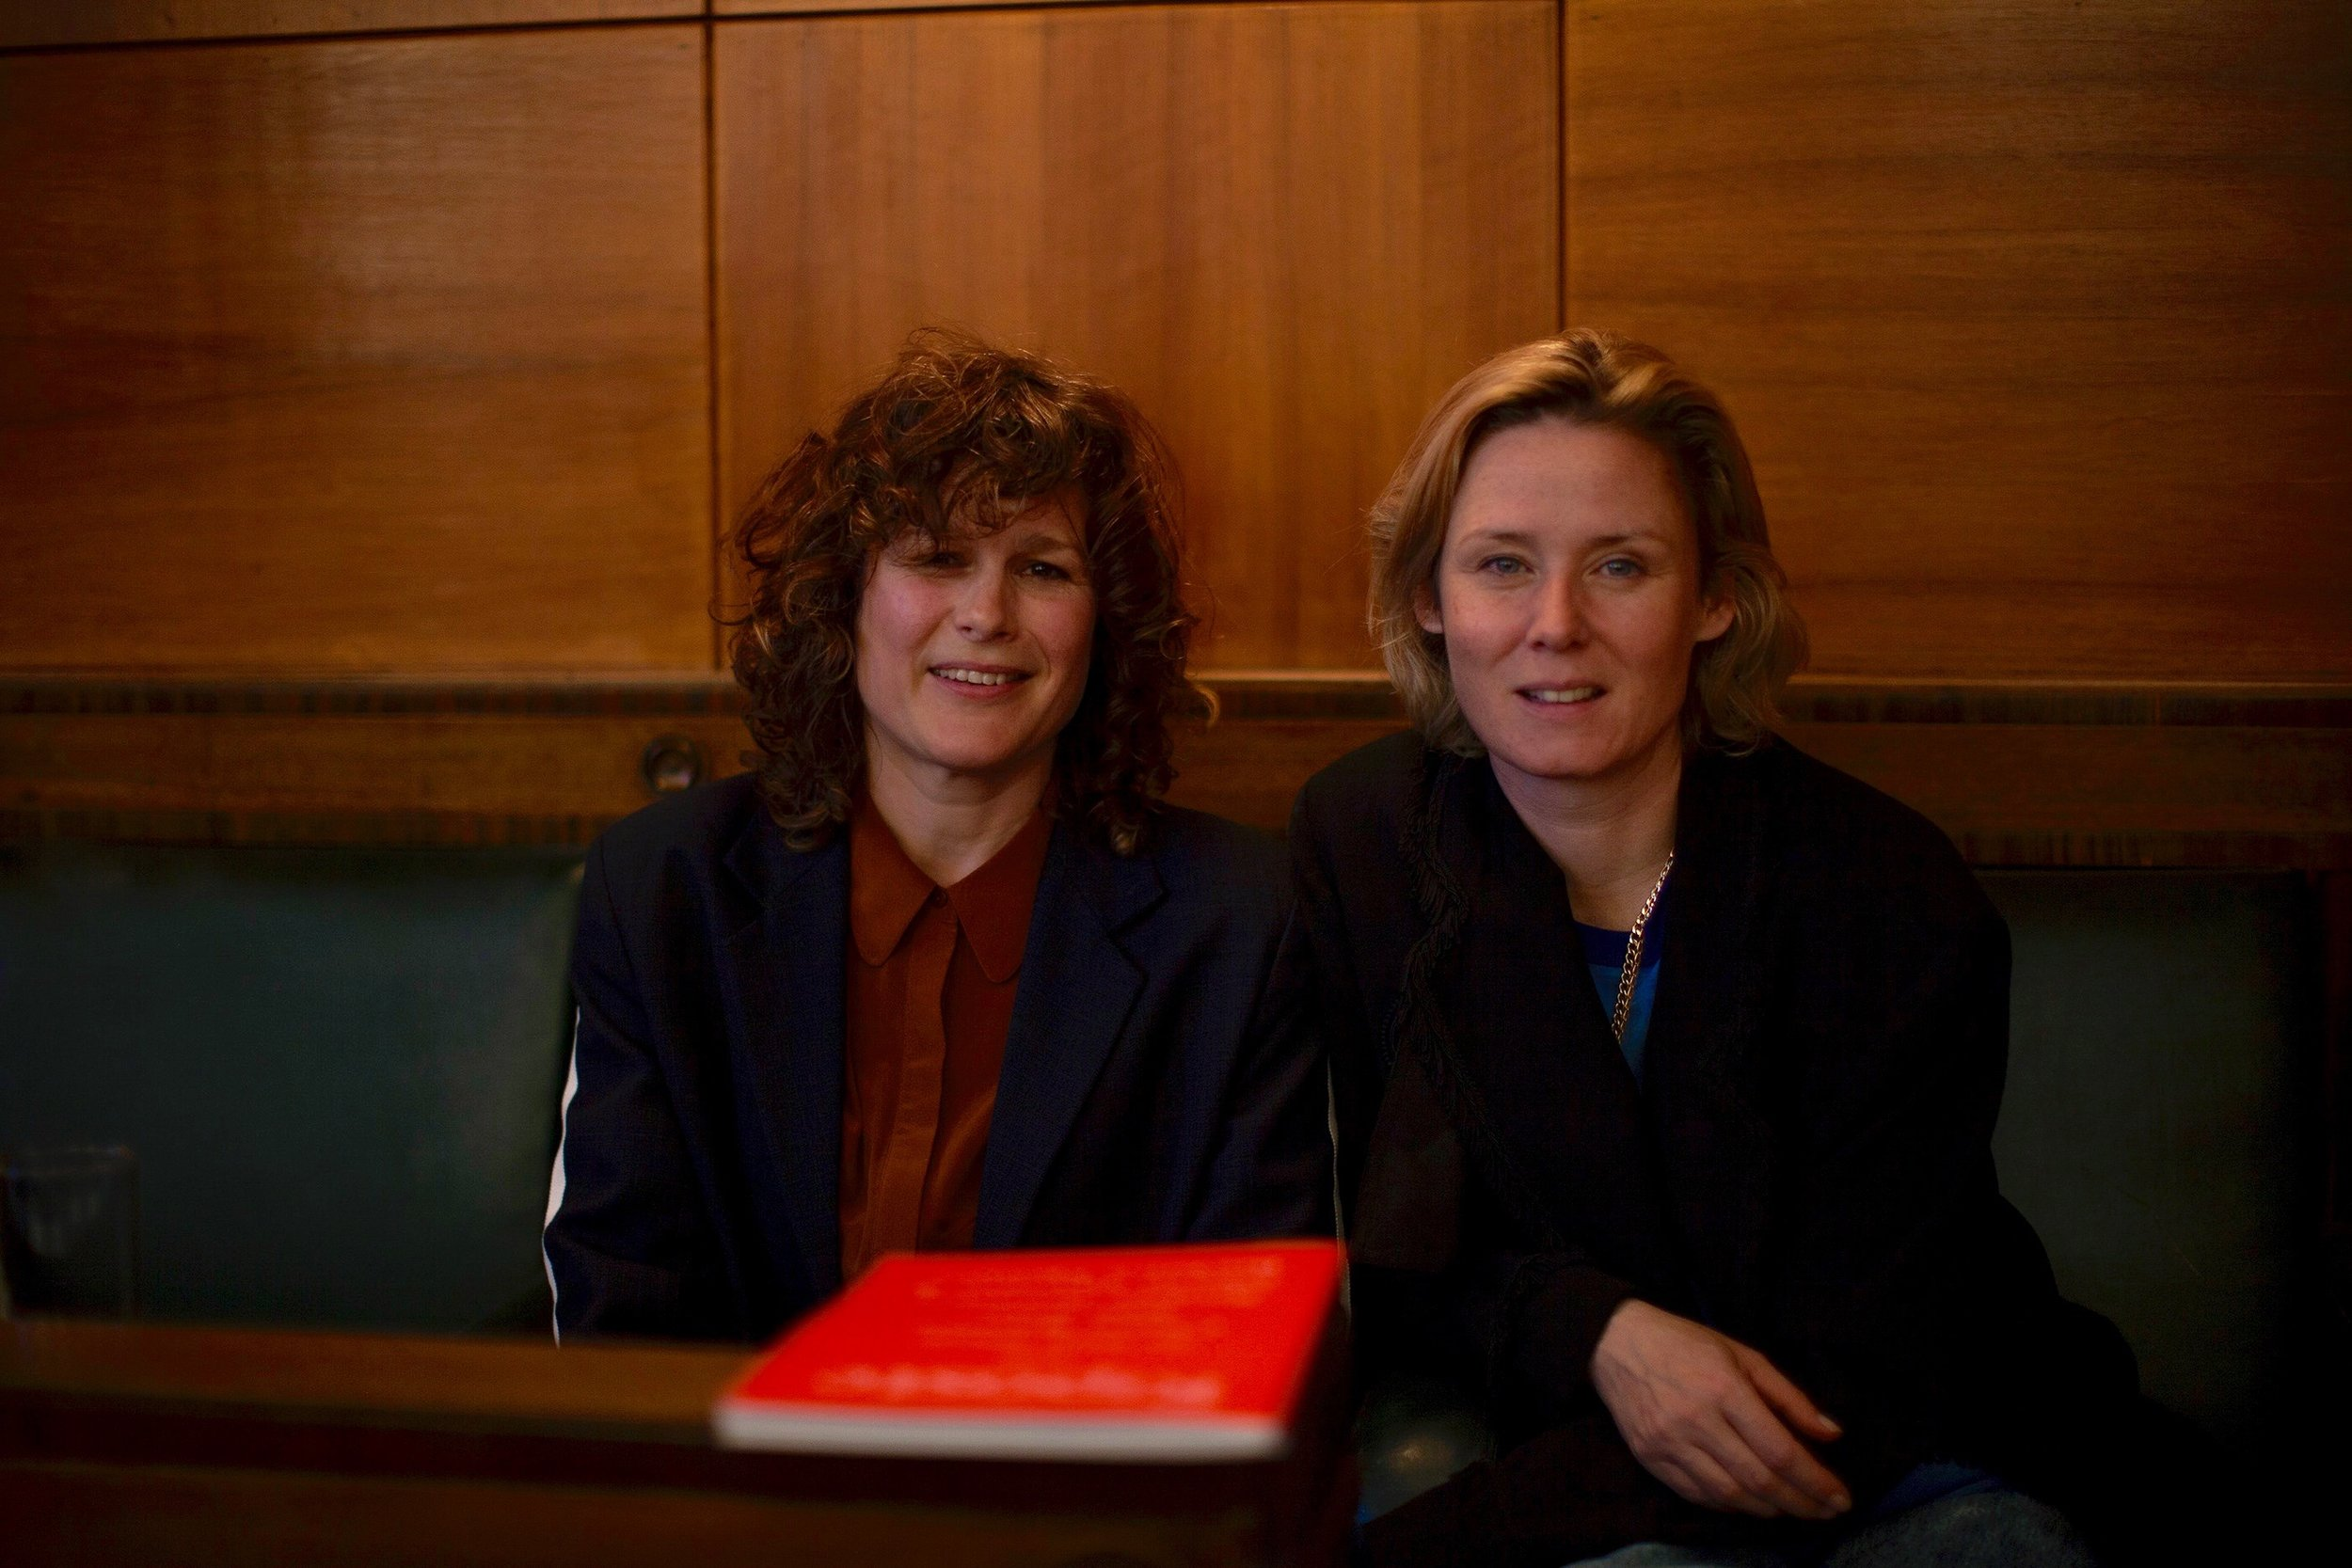 Dawn Shadforth and Roisin Murphy